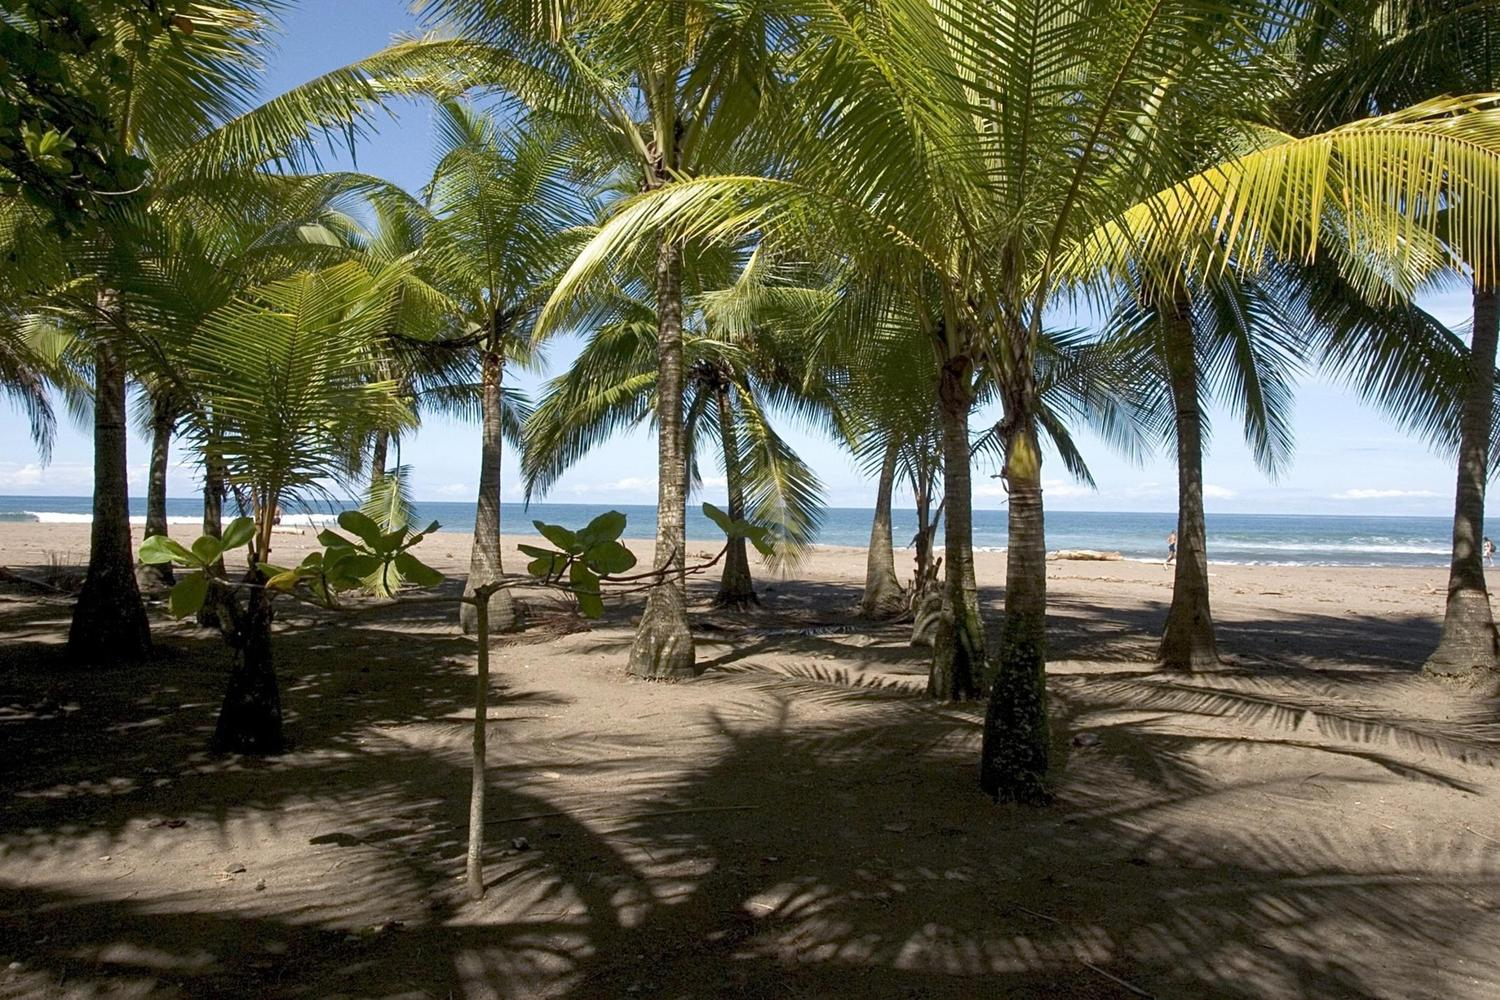 The beach at Samara, Costa Rica